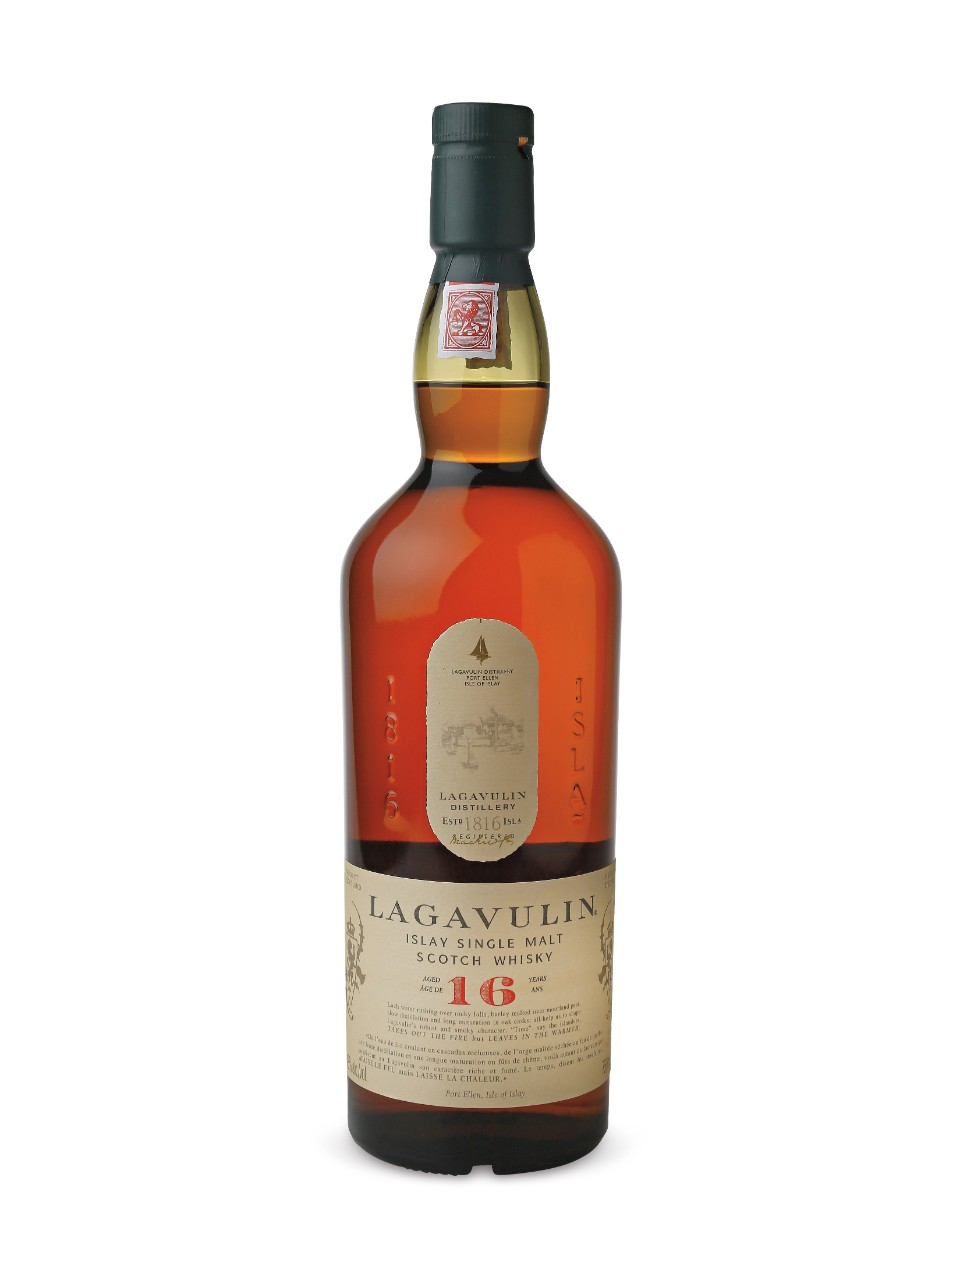 Lagavulin 16 Years Old Malt Scotch Whisky